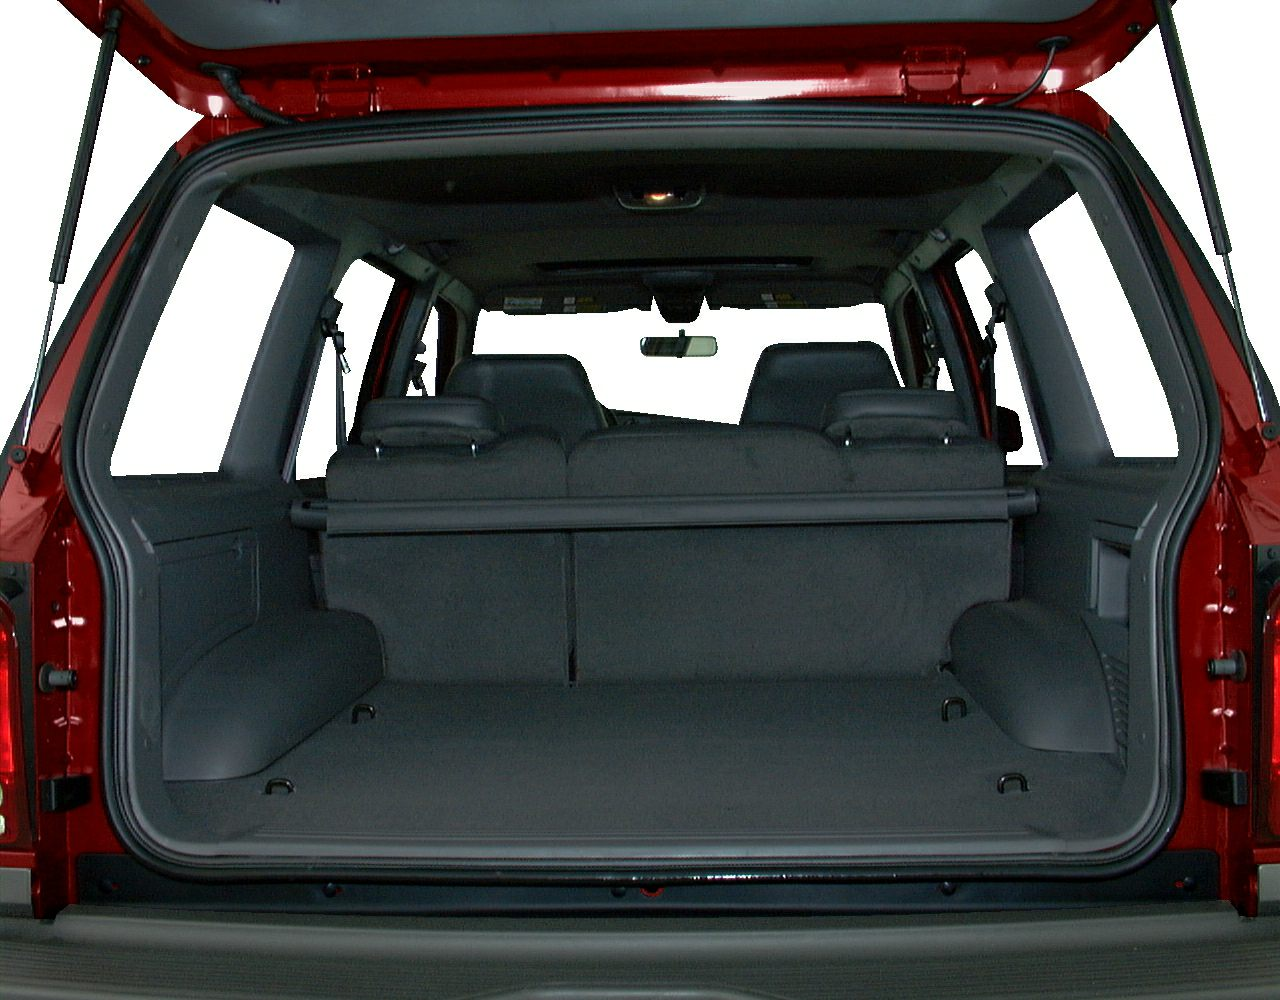 Ford Explorer Cargo Dimensions - Auto Express